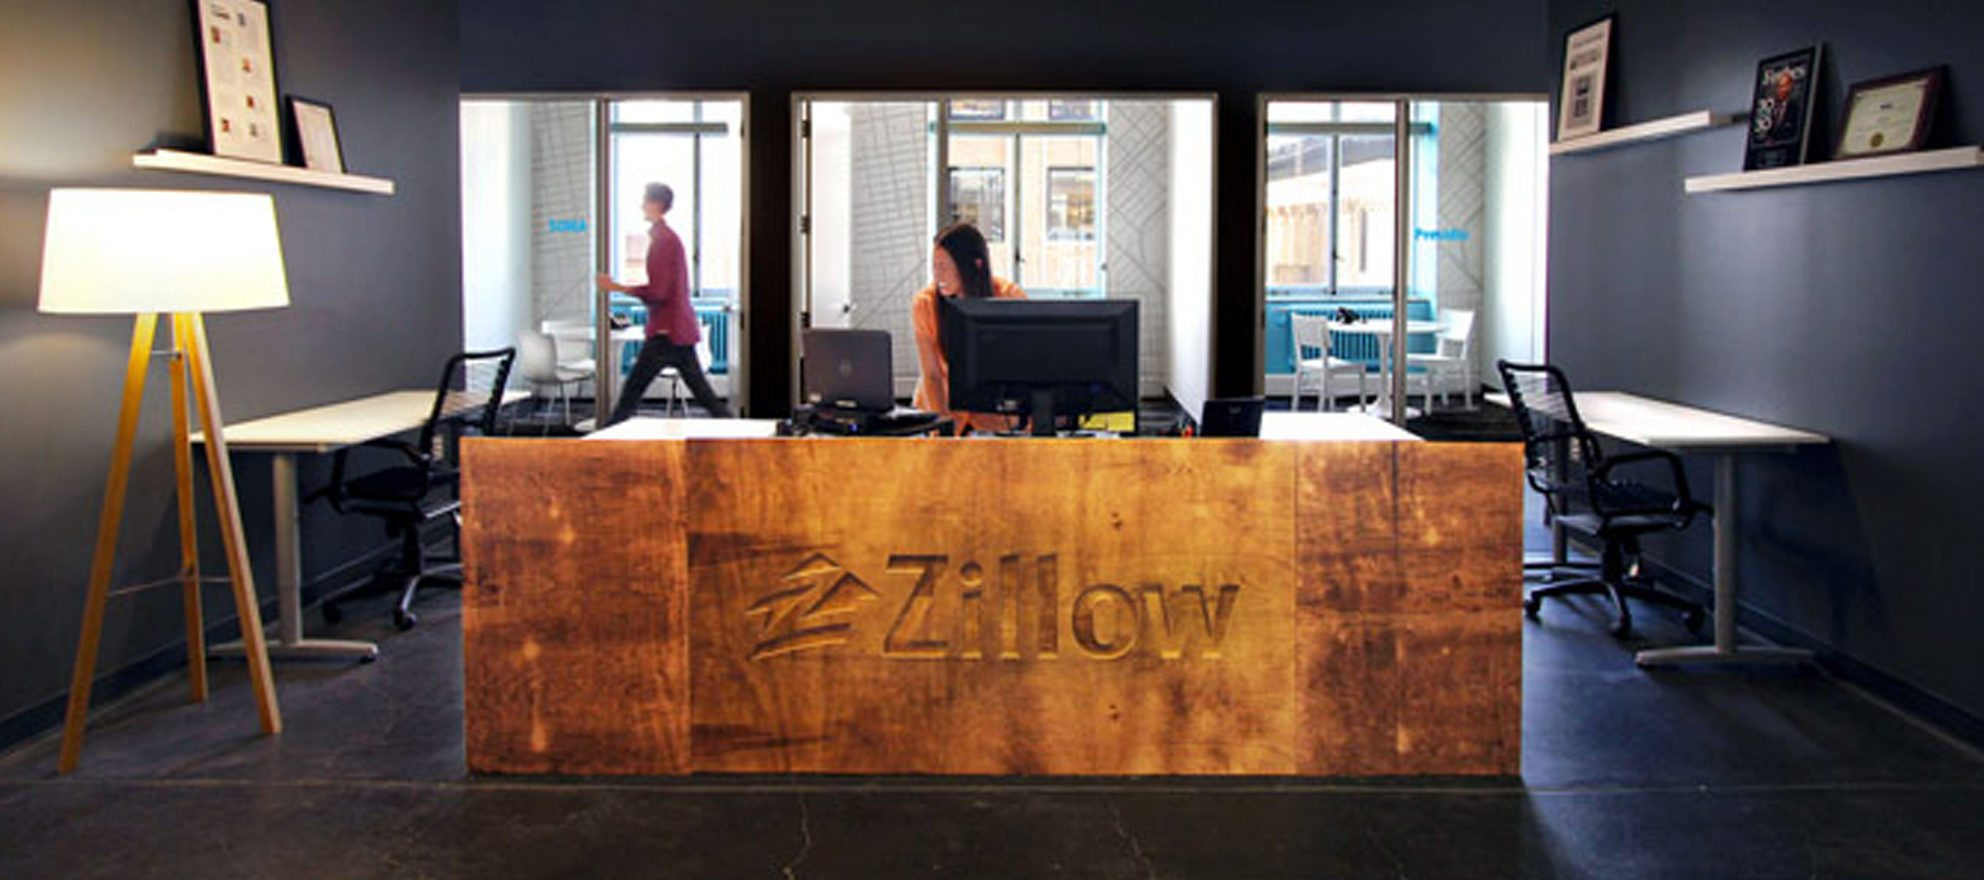 zillow group fourth quarter earnings